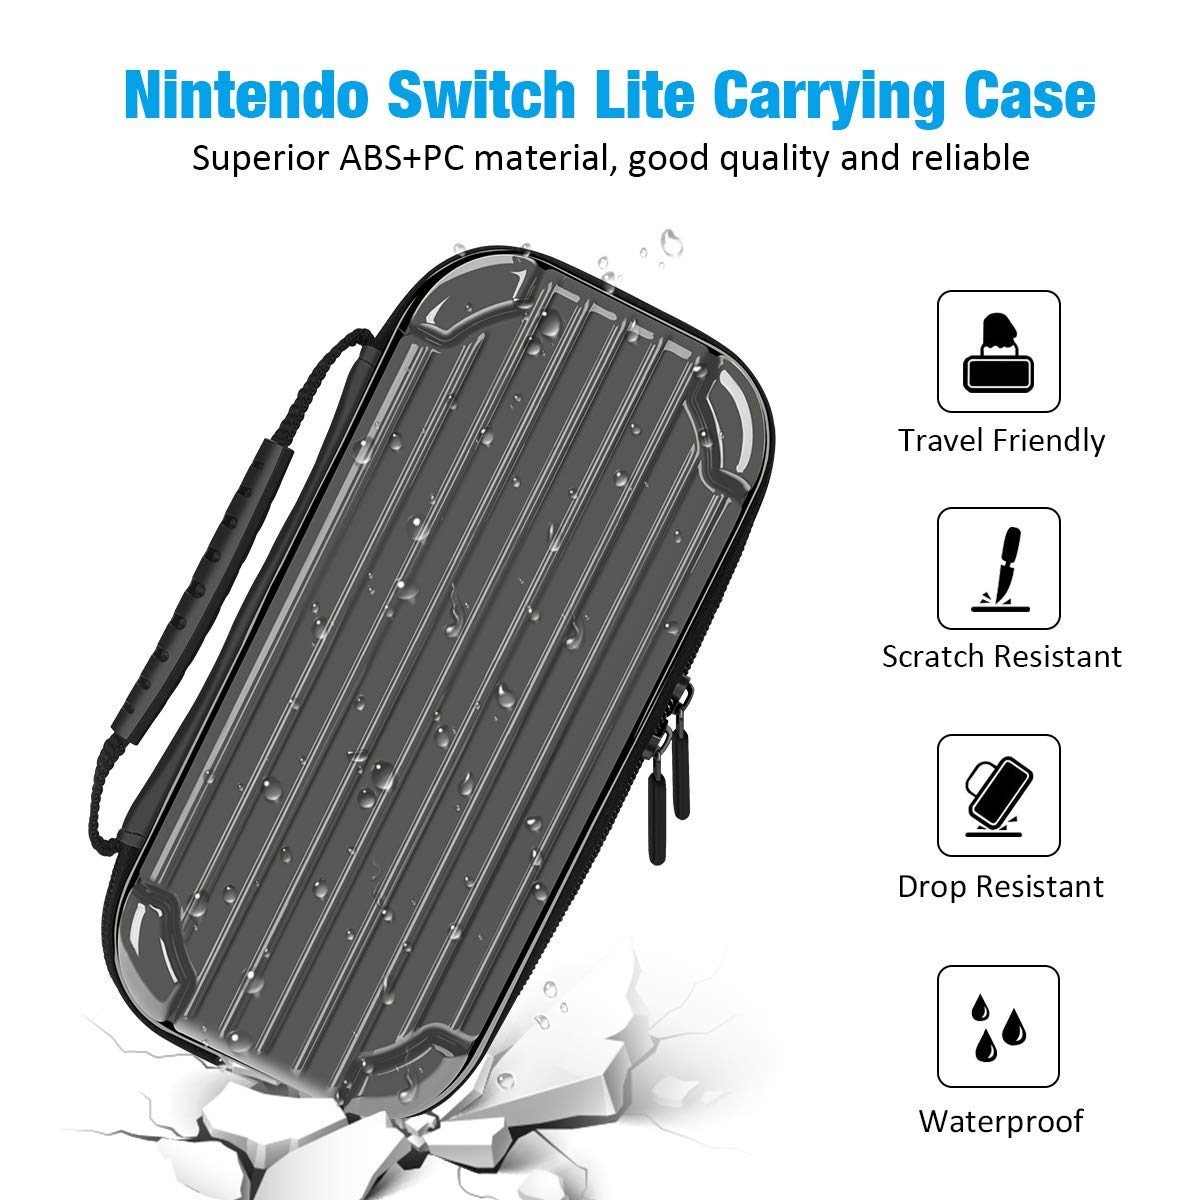 Carrying Case for Nintendo Switch Lite, Y Team Switch Lite Case with 10 Game Cartridge Storage Holders and 1 Tempered Screen Protector for Nintendo Switch Lite Console and Accessories (Grey)